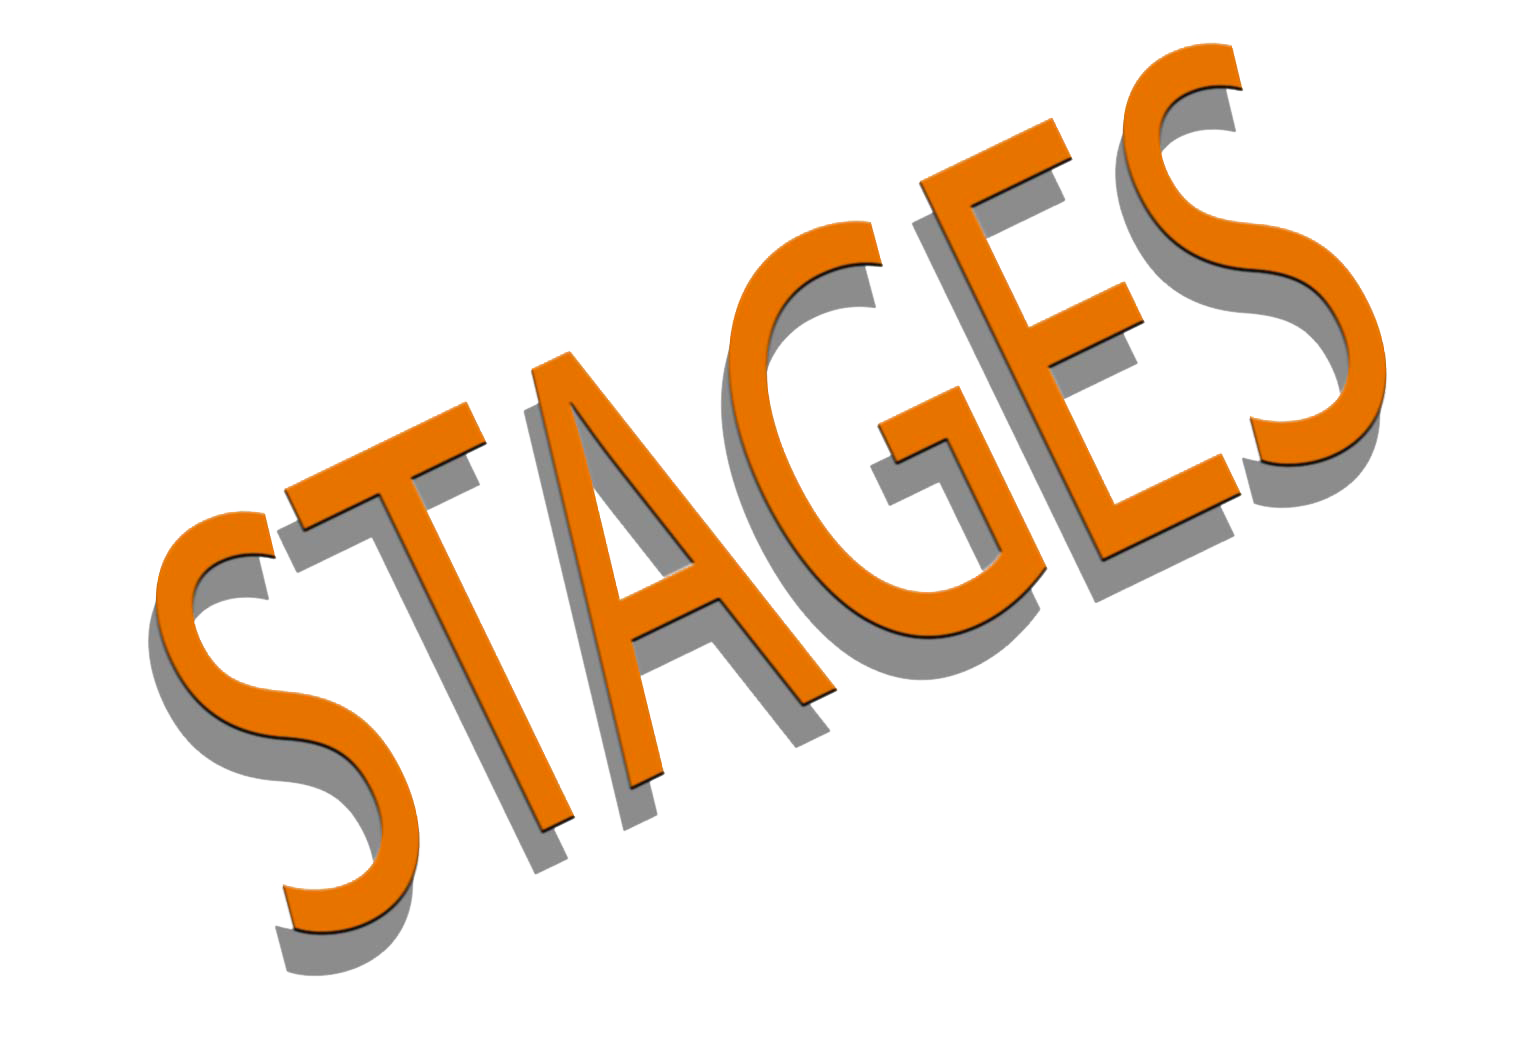 STAGESpng